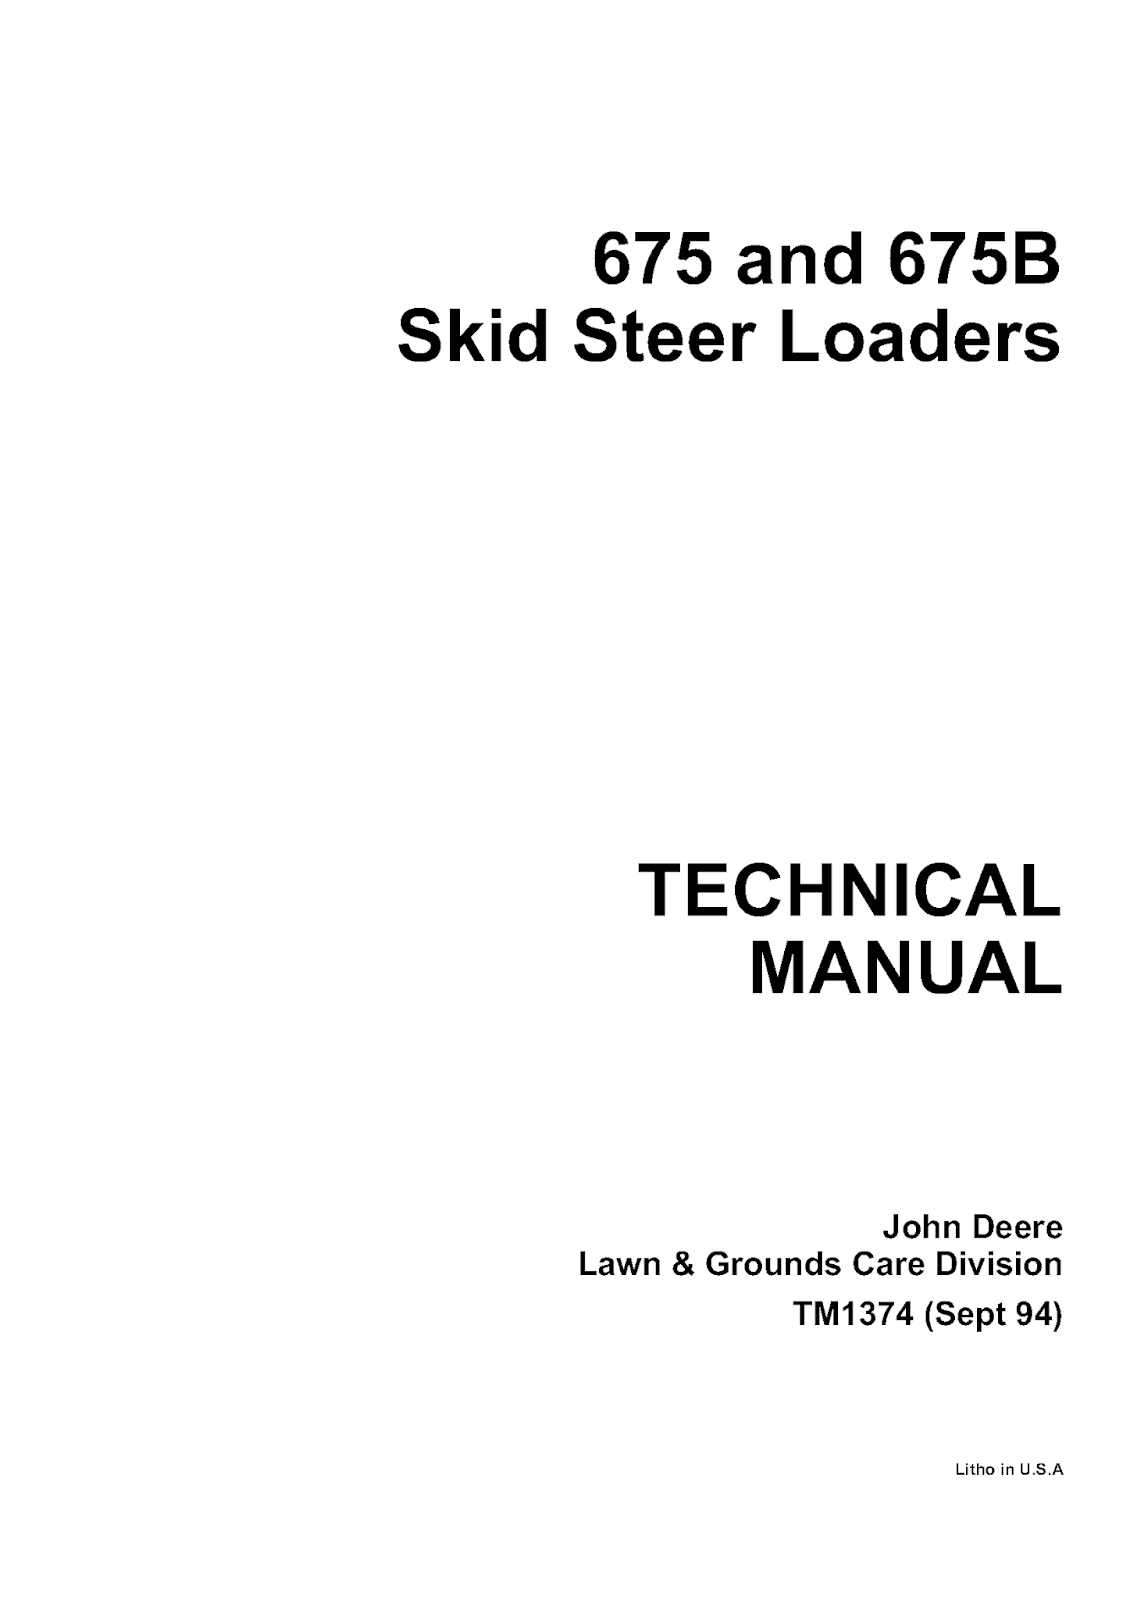 John Deere 675B Skid Steer Loader Manual